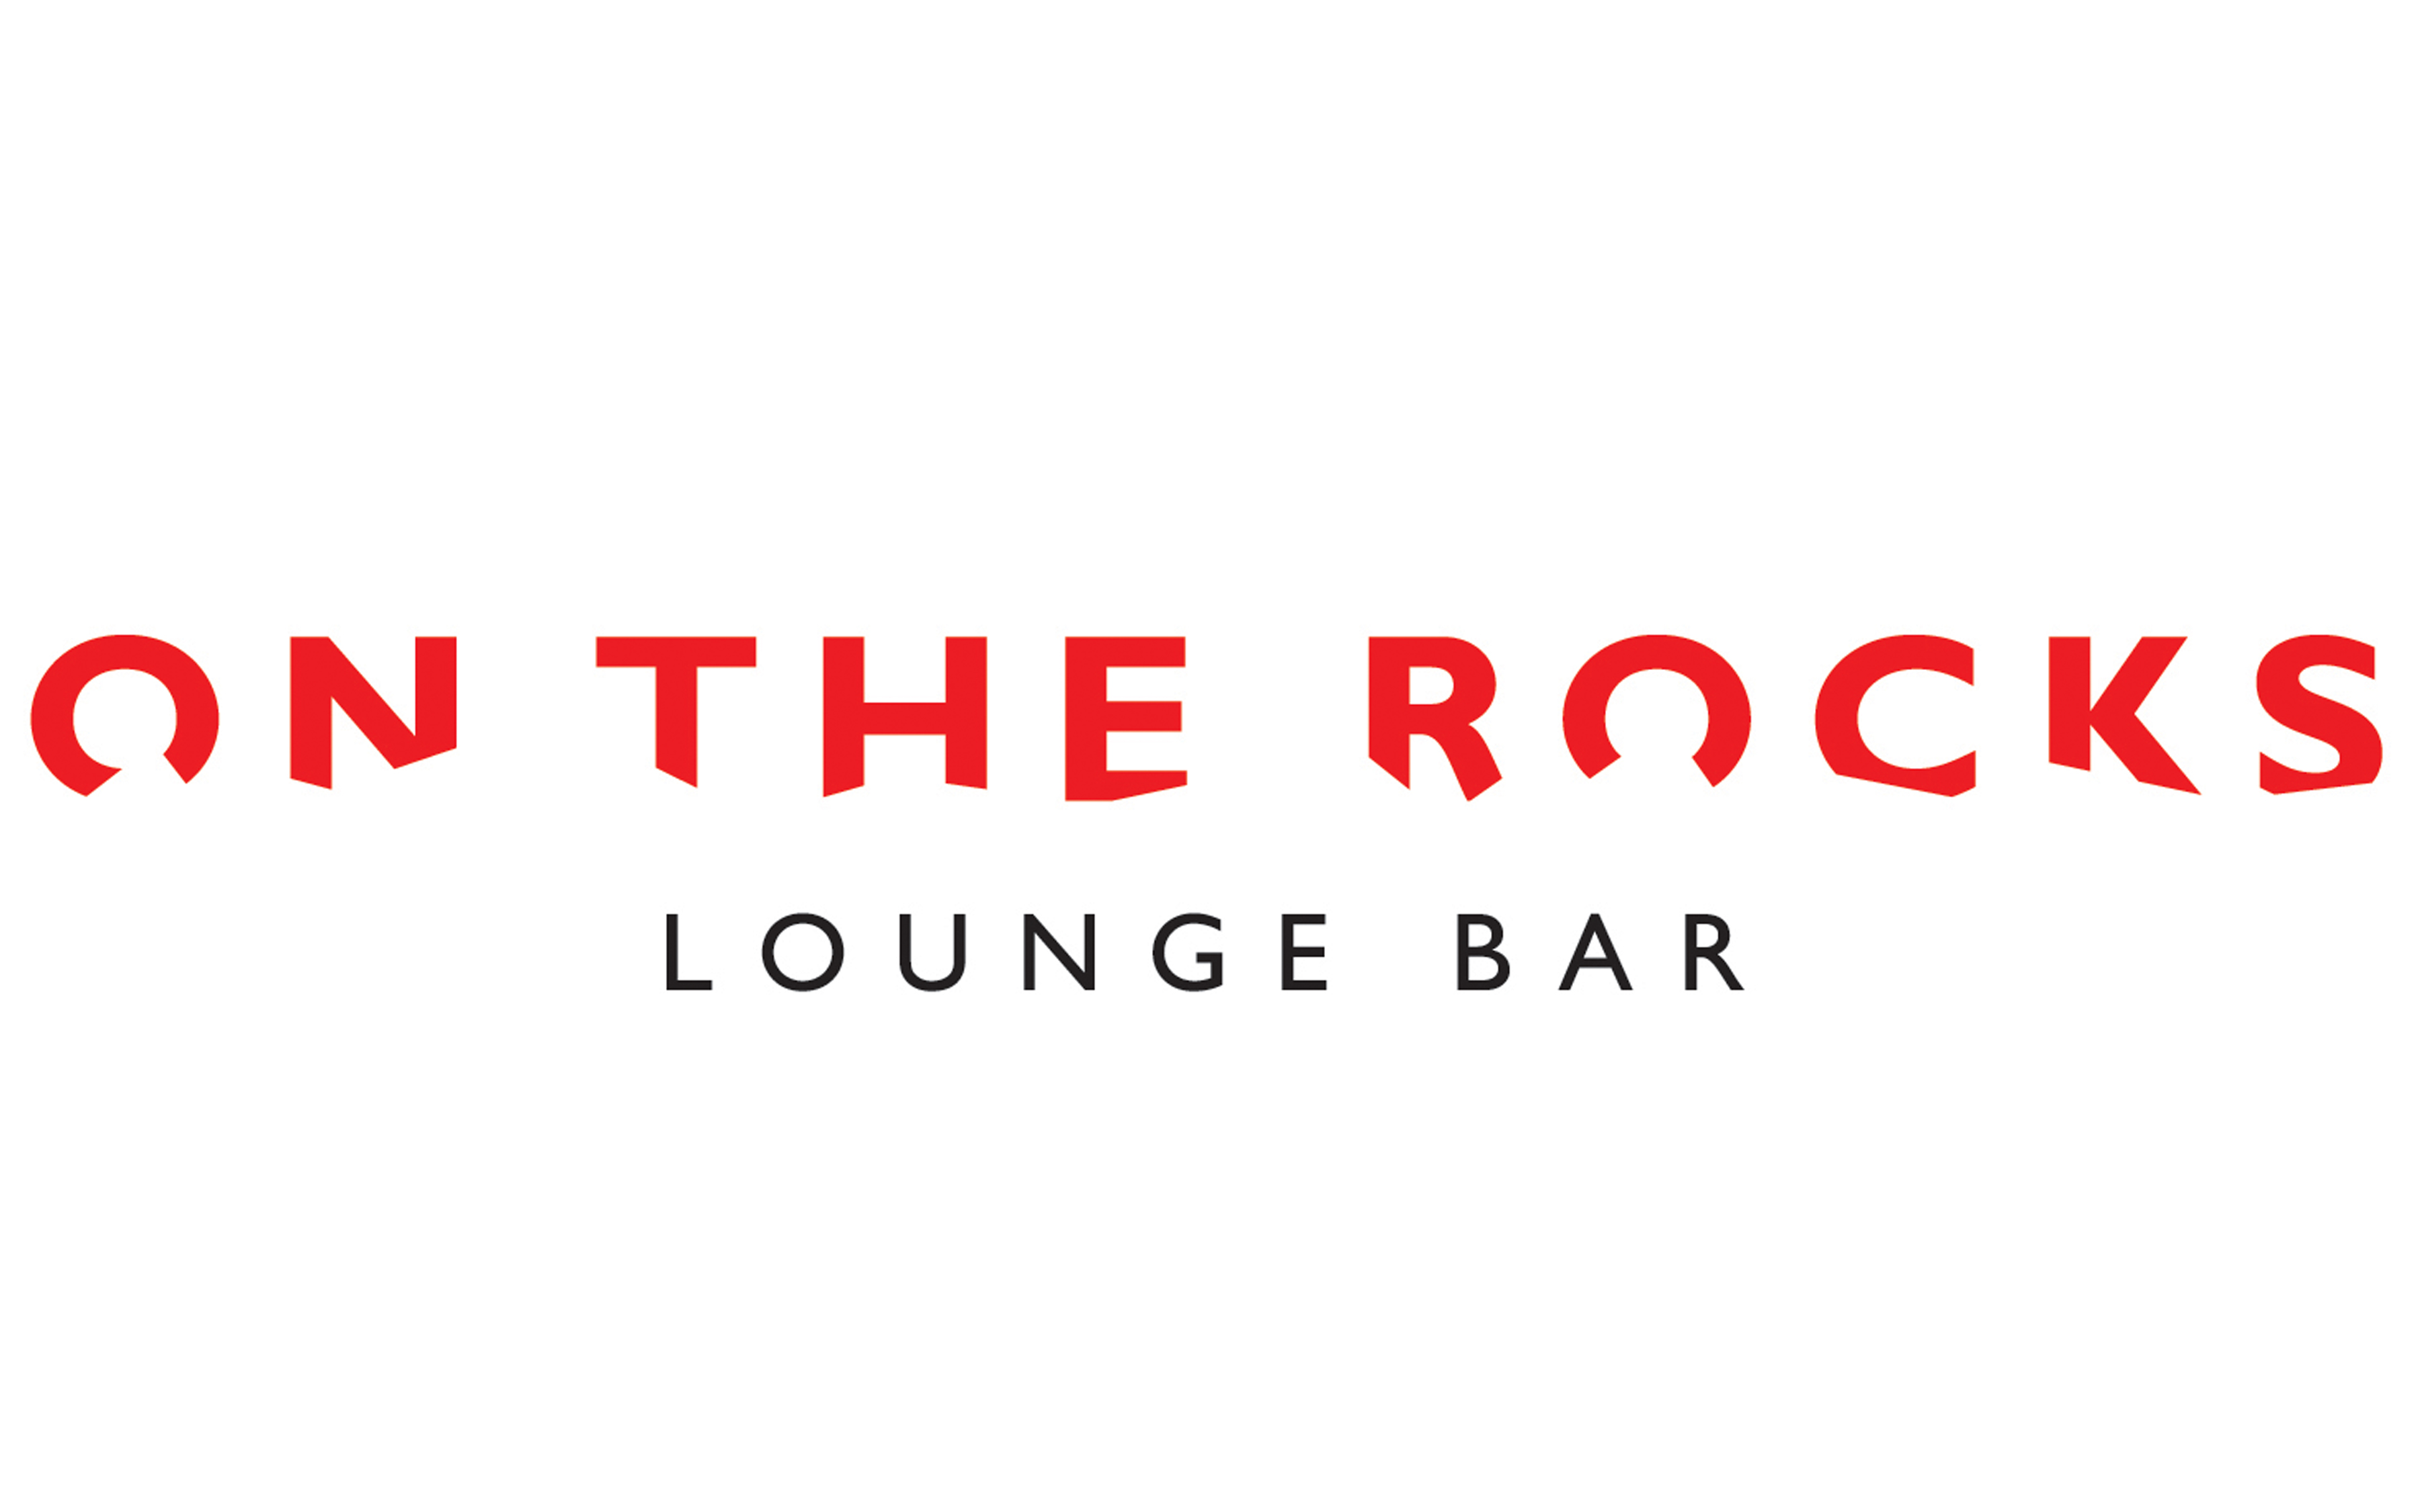 On the Rocks Lounge Bar - Le Suffren Hotel & Marina